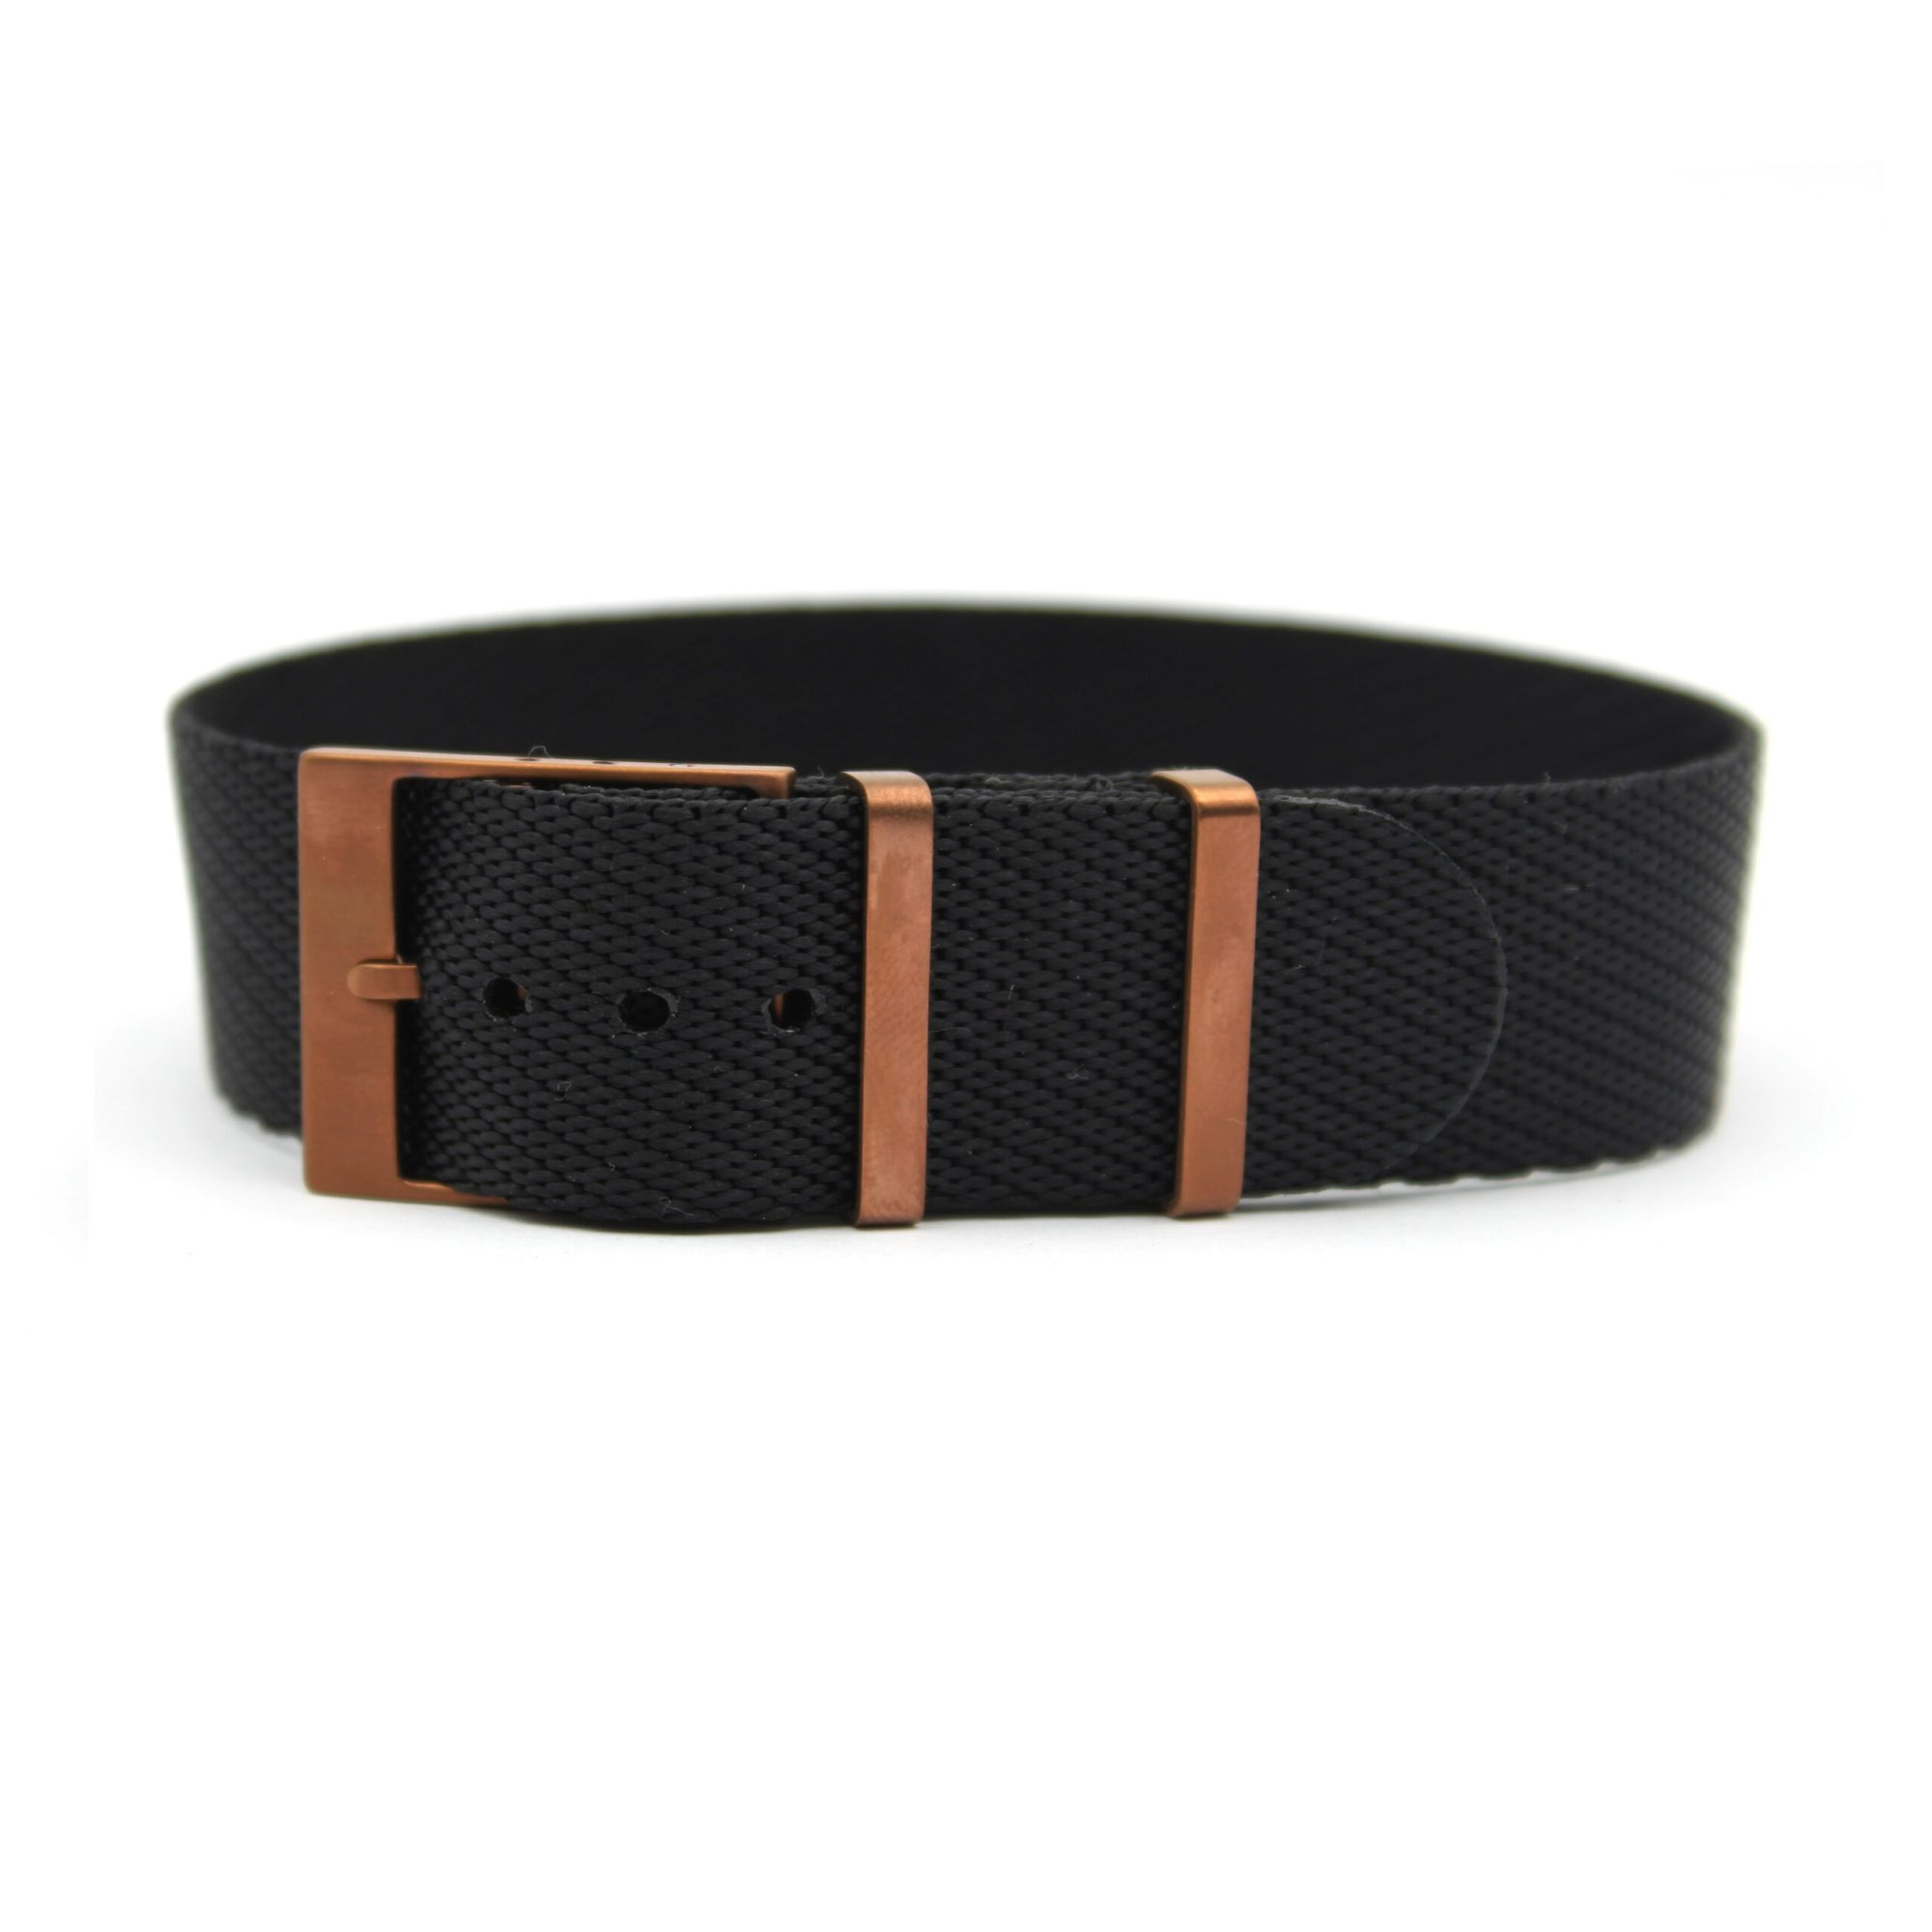 bronze nato strap Black adjustable for tudor